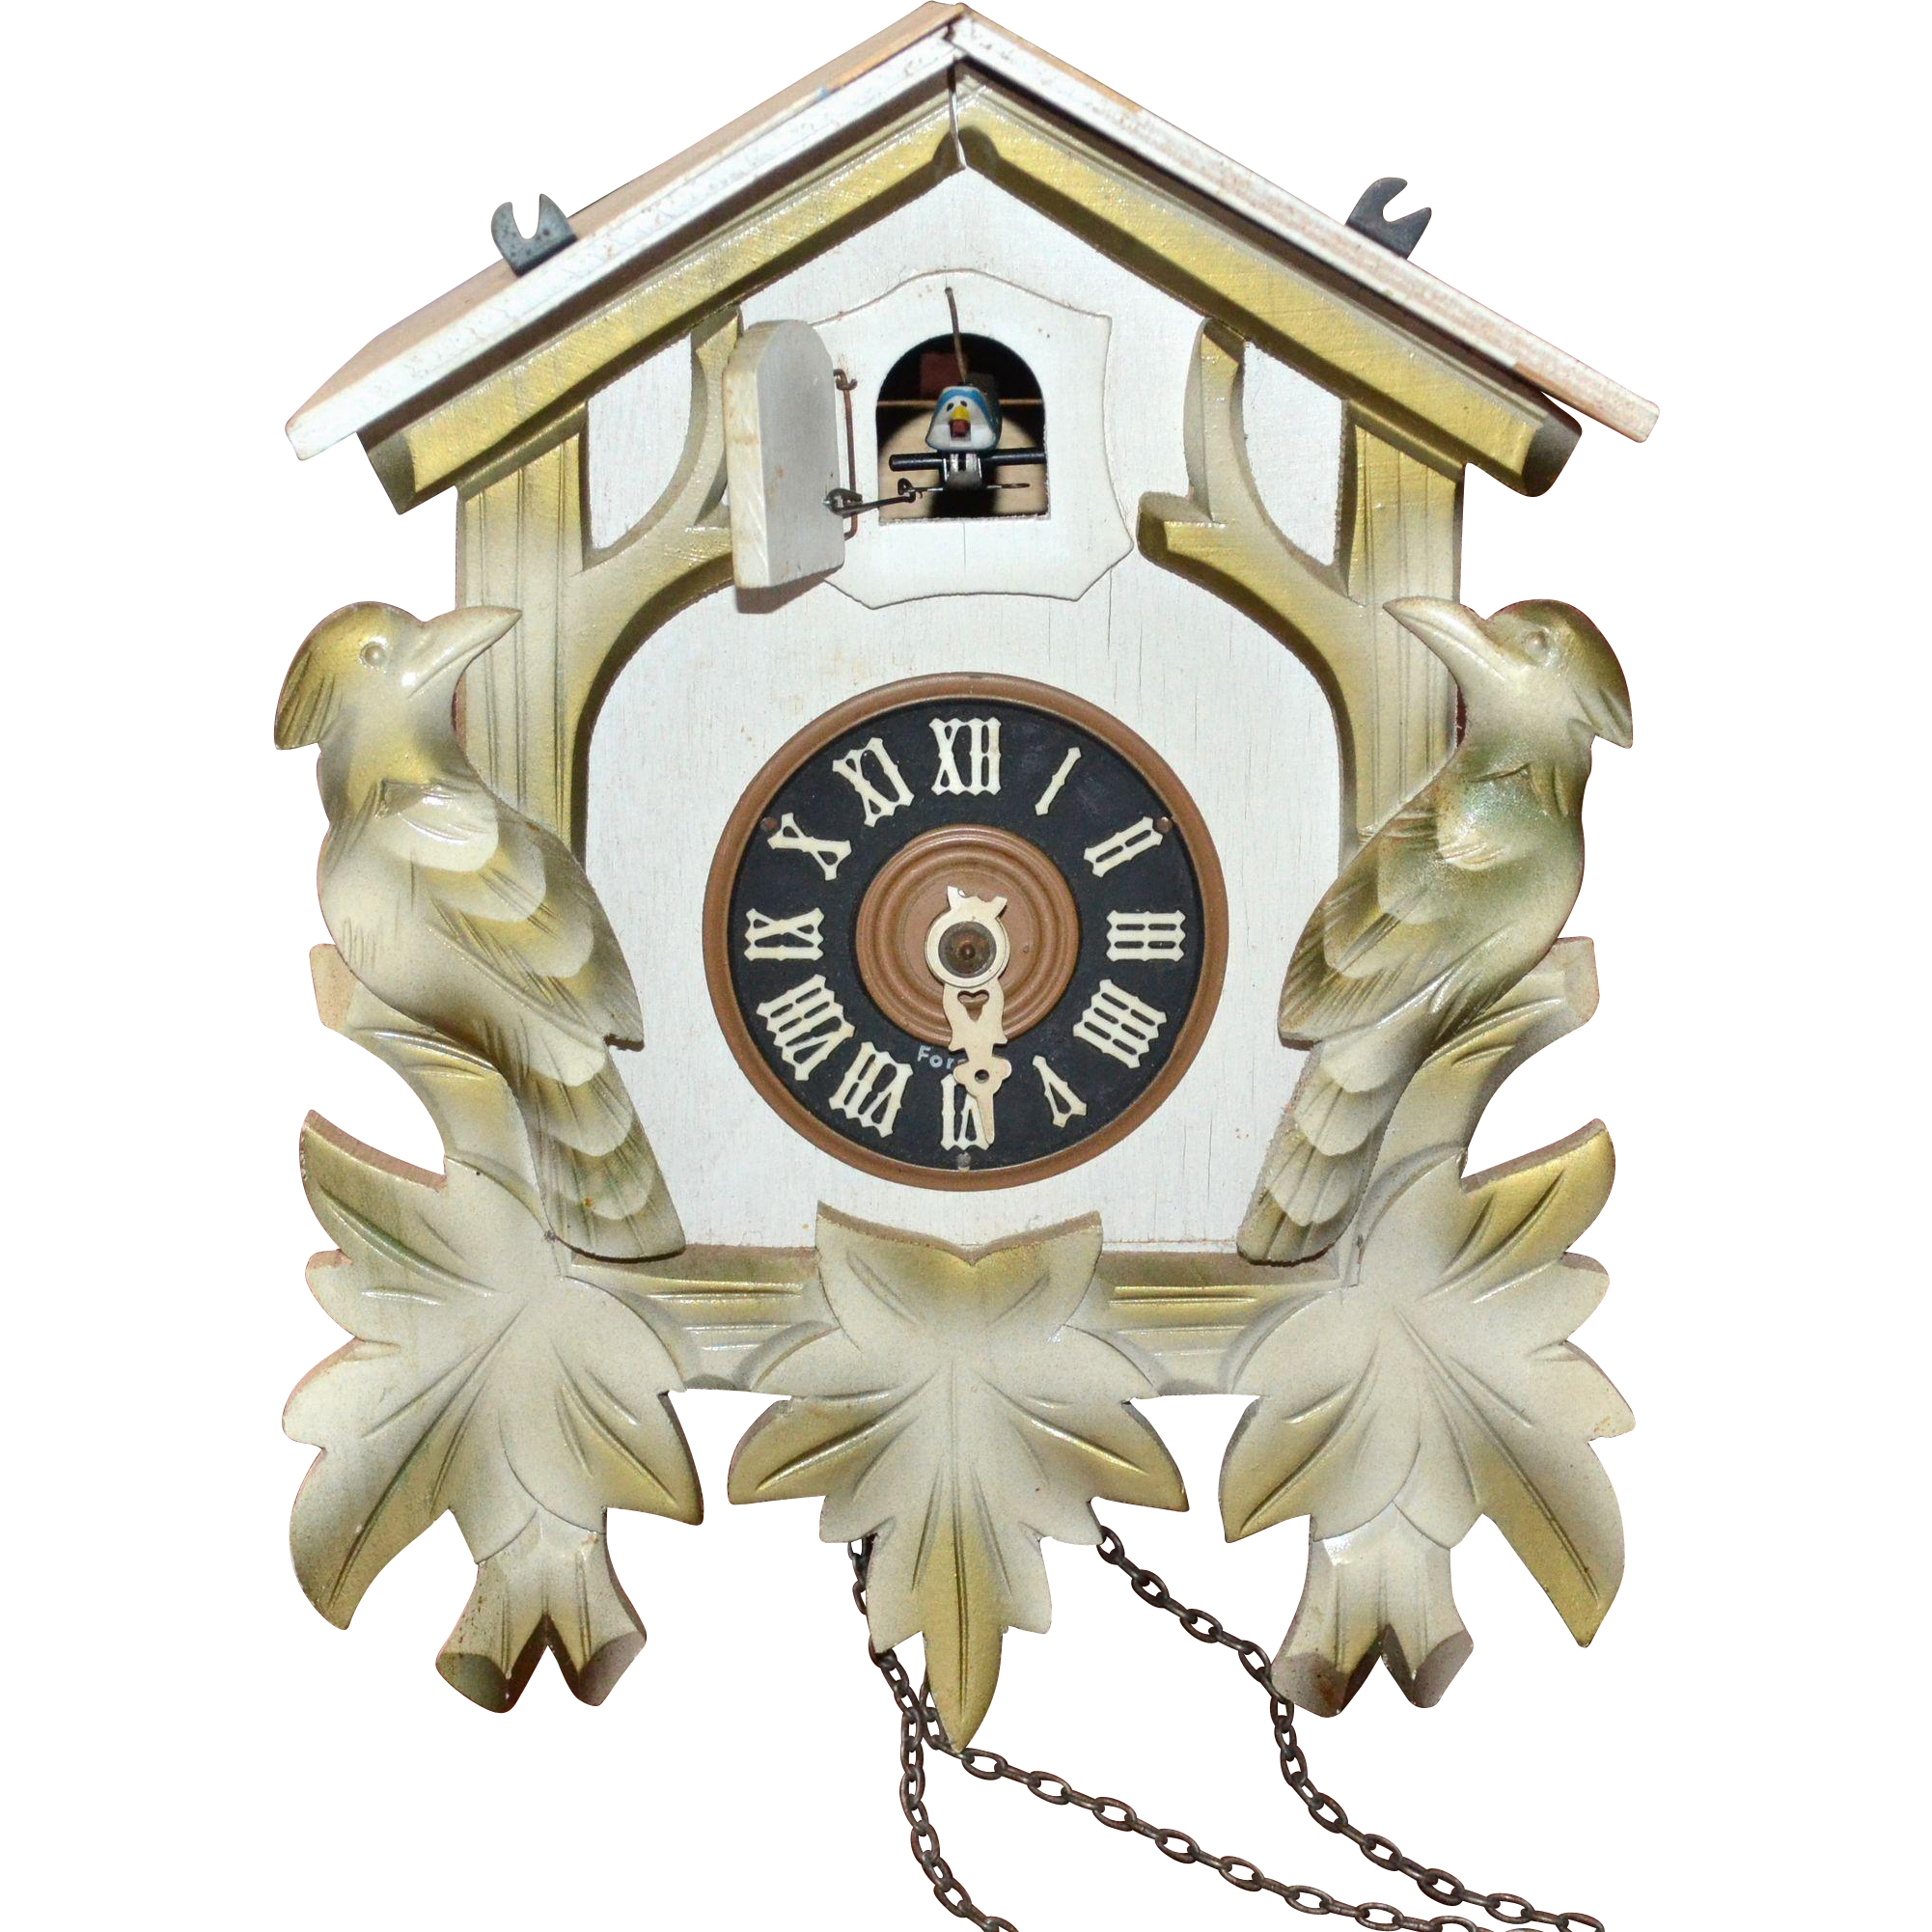 Woodworking Clock Parts With Amazing Creativity In South